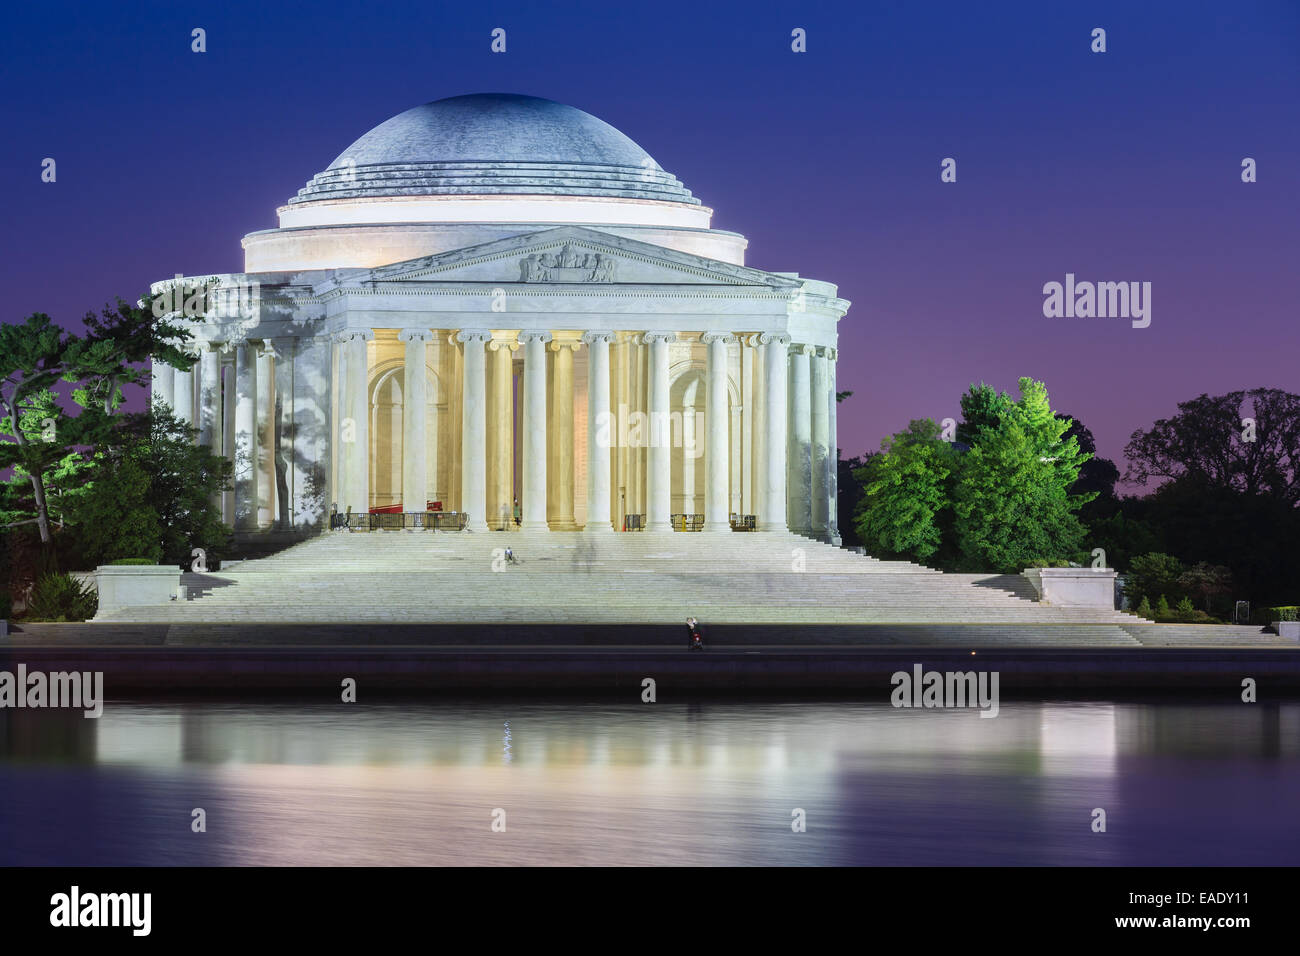 Le Thomas Jefferson Memorial est un mémorial présidentiel à Washington, D.C, dédié à Photo Stock